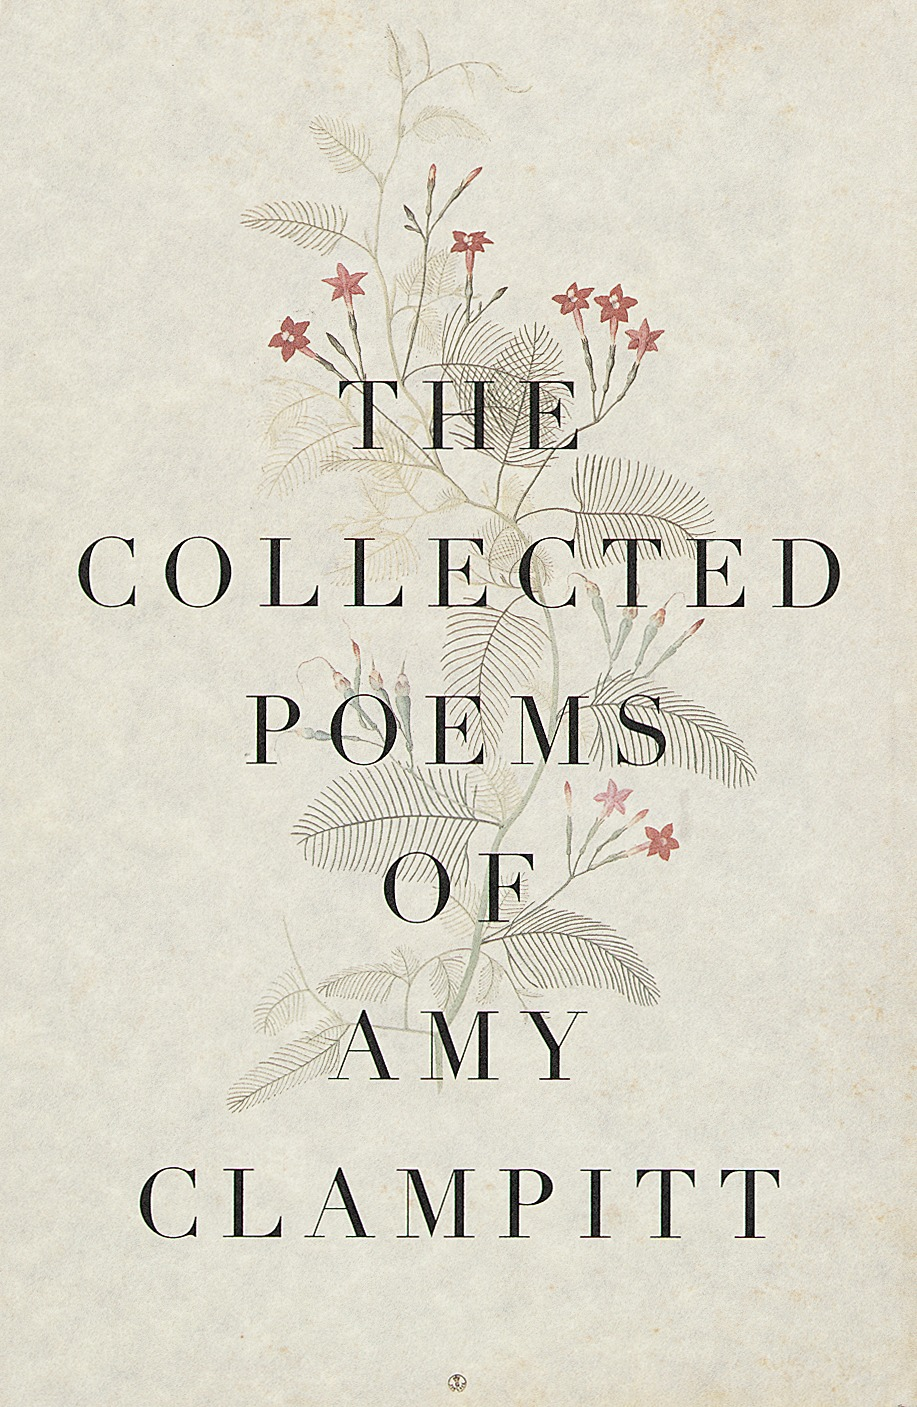 Collected Poems.jpg